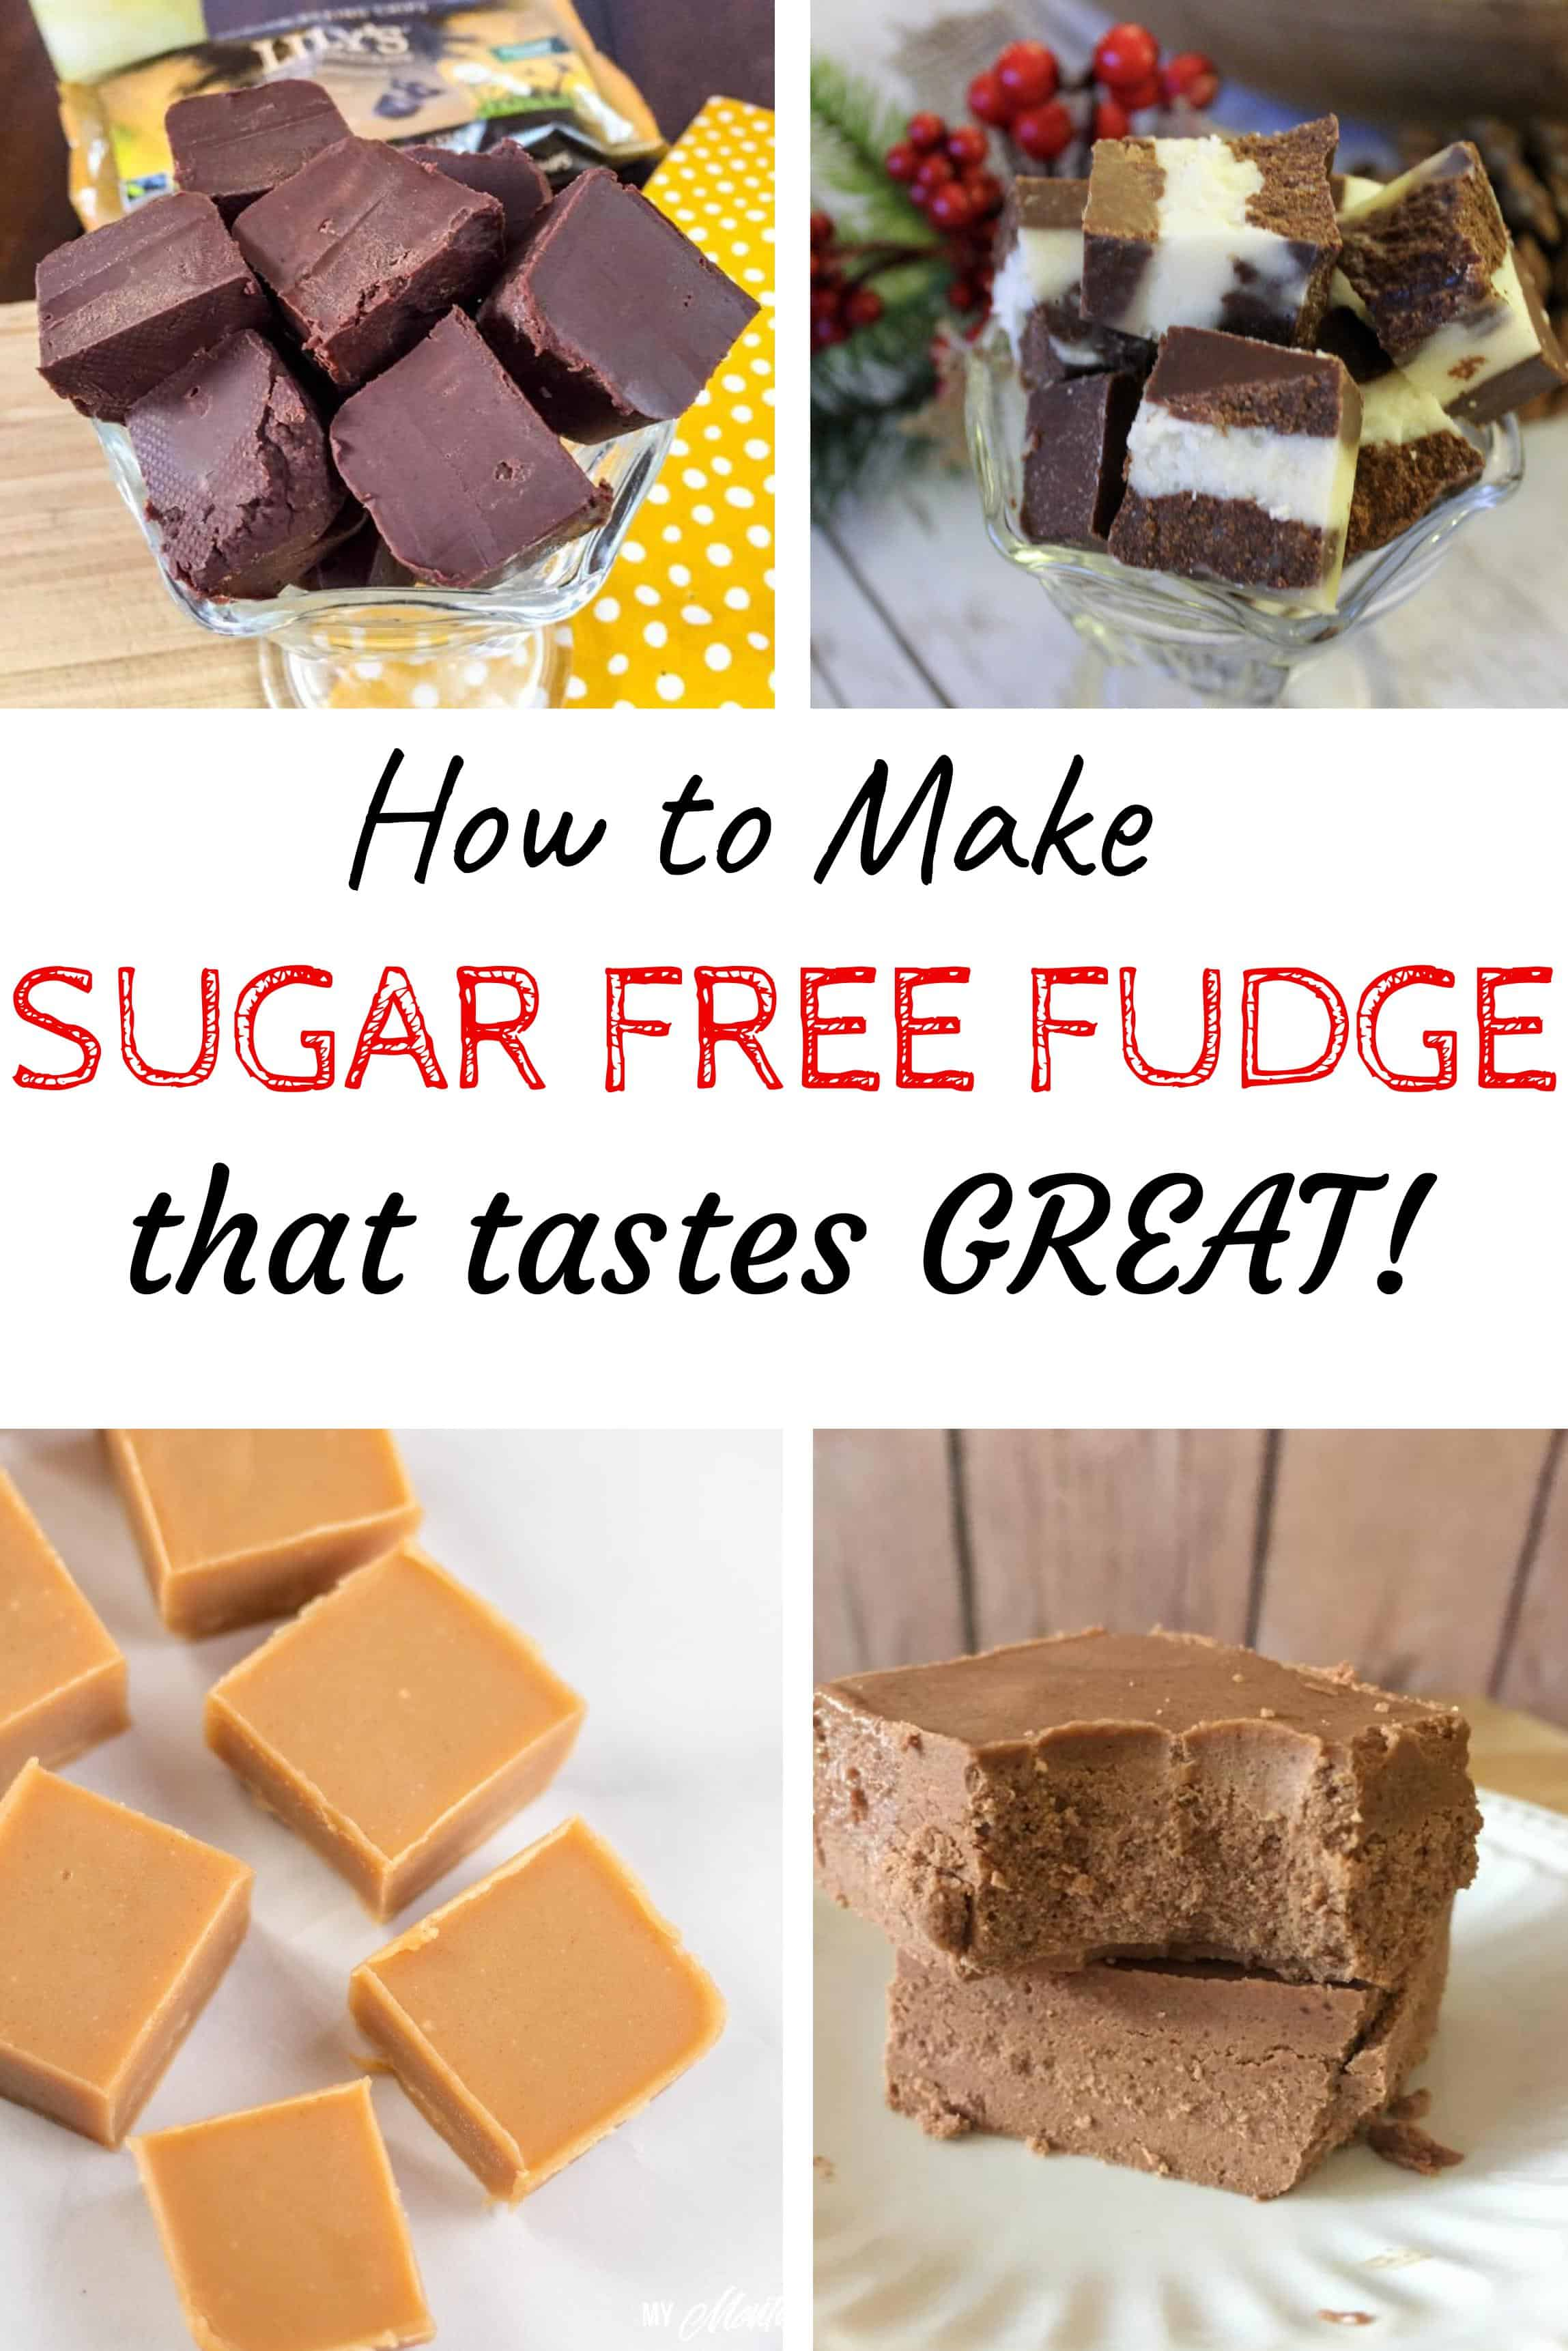 It is super simple to make great tasting sugar free fudge. Only a handful of ingredients and a few moments, then you can have a delicious treat whenever you want! These recipes make great low carb fudge and keto fudge easy! #keto #lowcarb #healthyfudge #sugarfreefudge #trimhealthymama #thm #thmfudge #sugarfree #fudge #2ingredientfudge